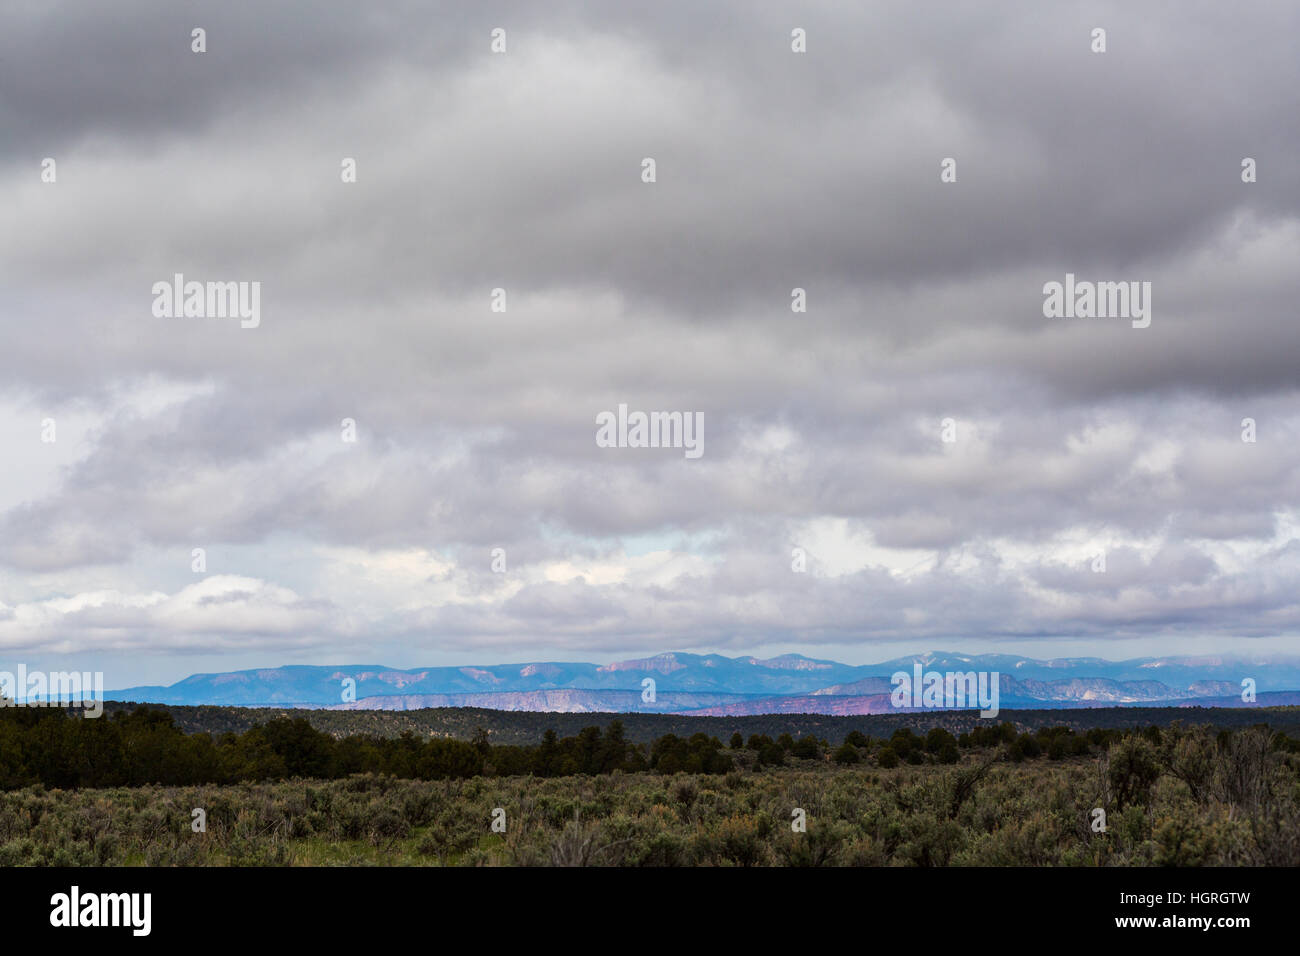 Sagebrush and juniper trees covering the open expanses of the northern Kaibab Plateau. Kaibab National Forest, Arizona Stock Photo